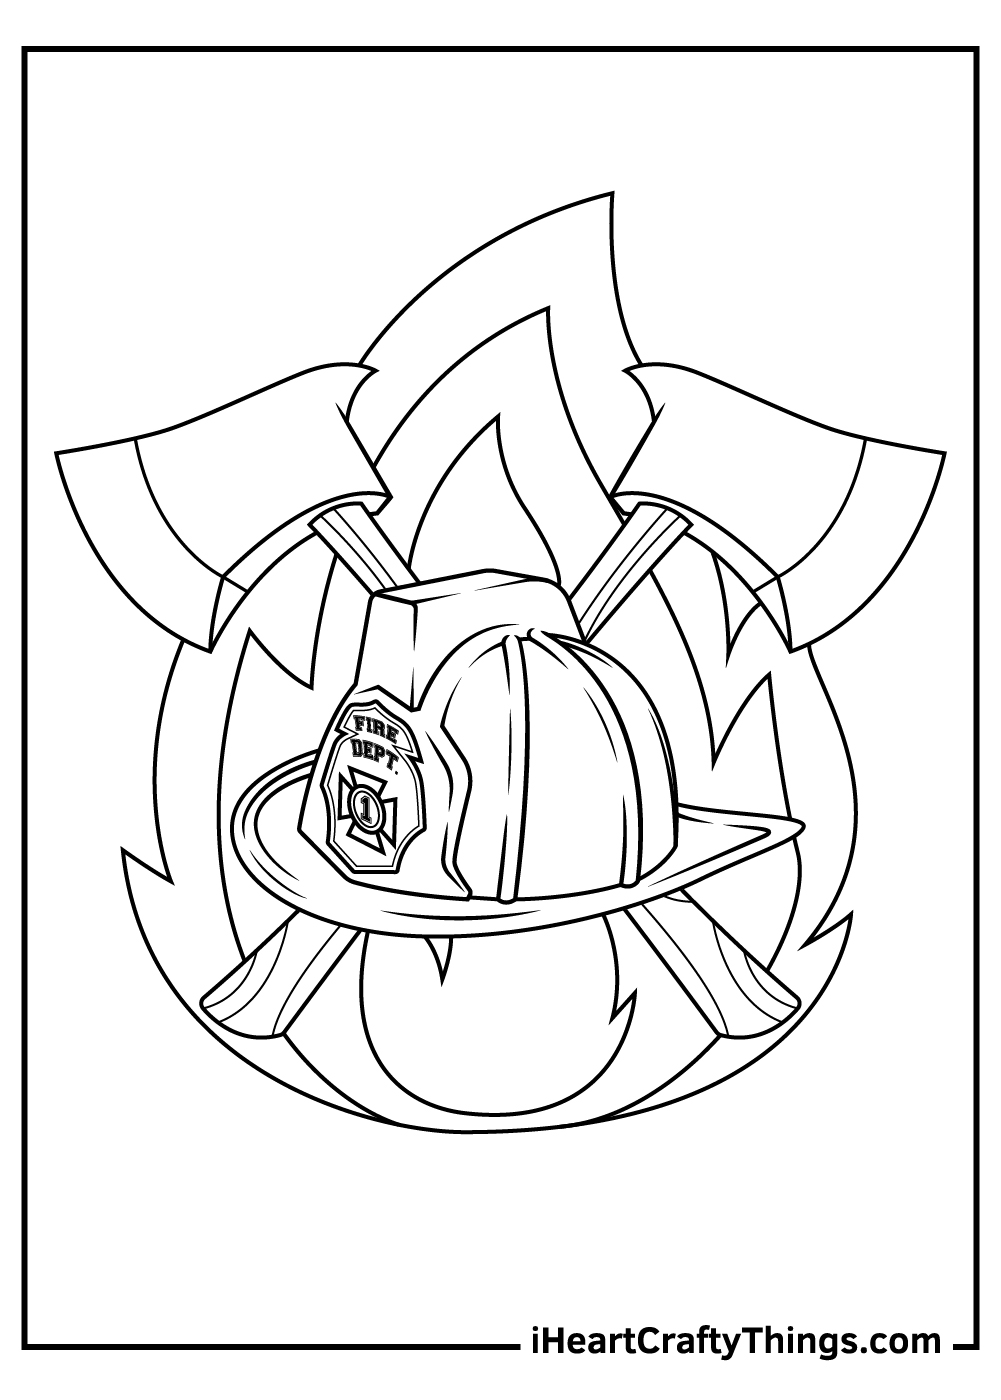 fireman helmet coloring pages free download